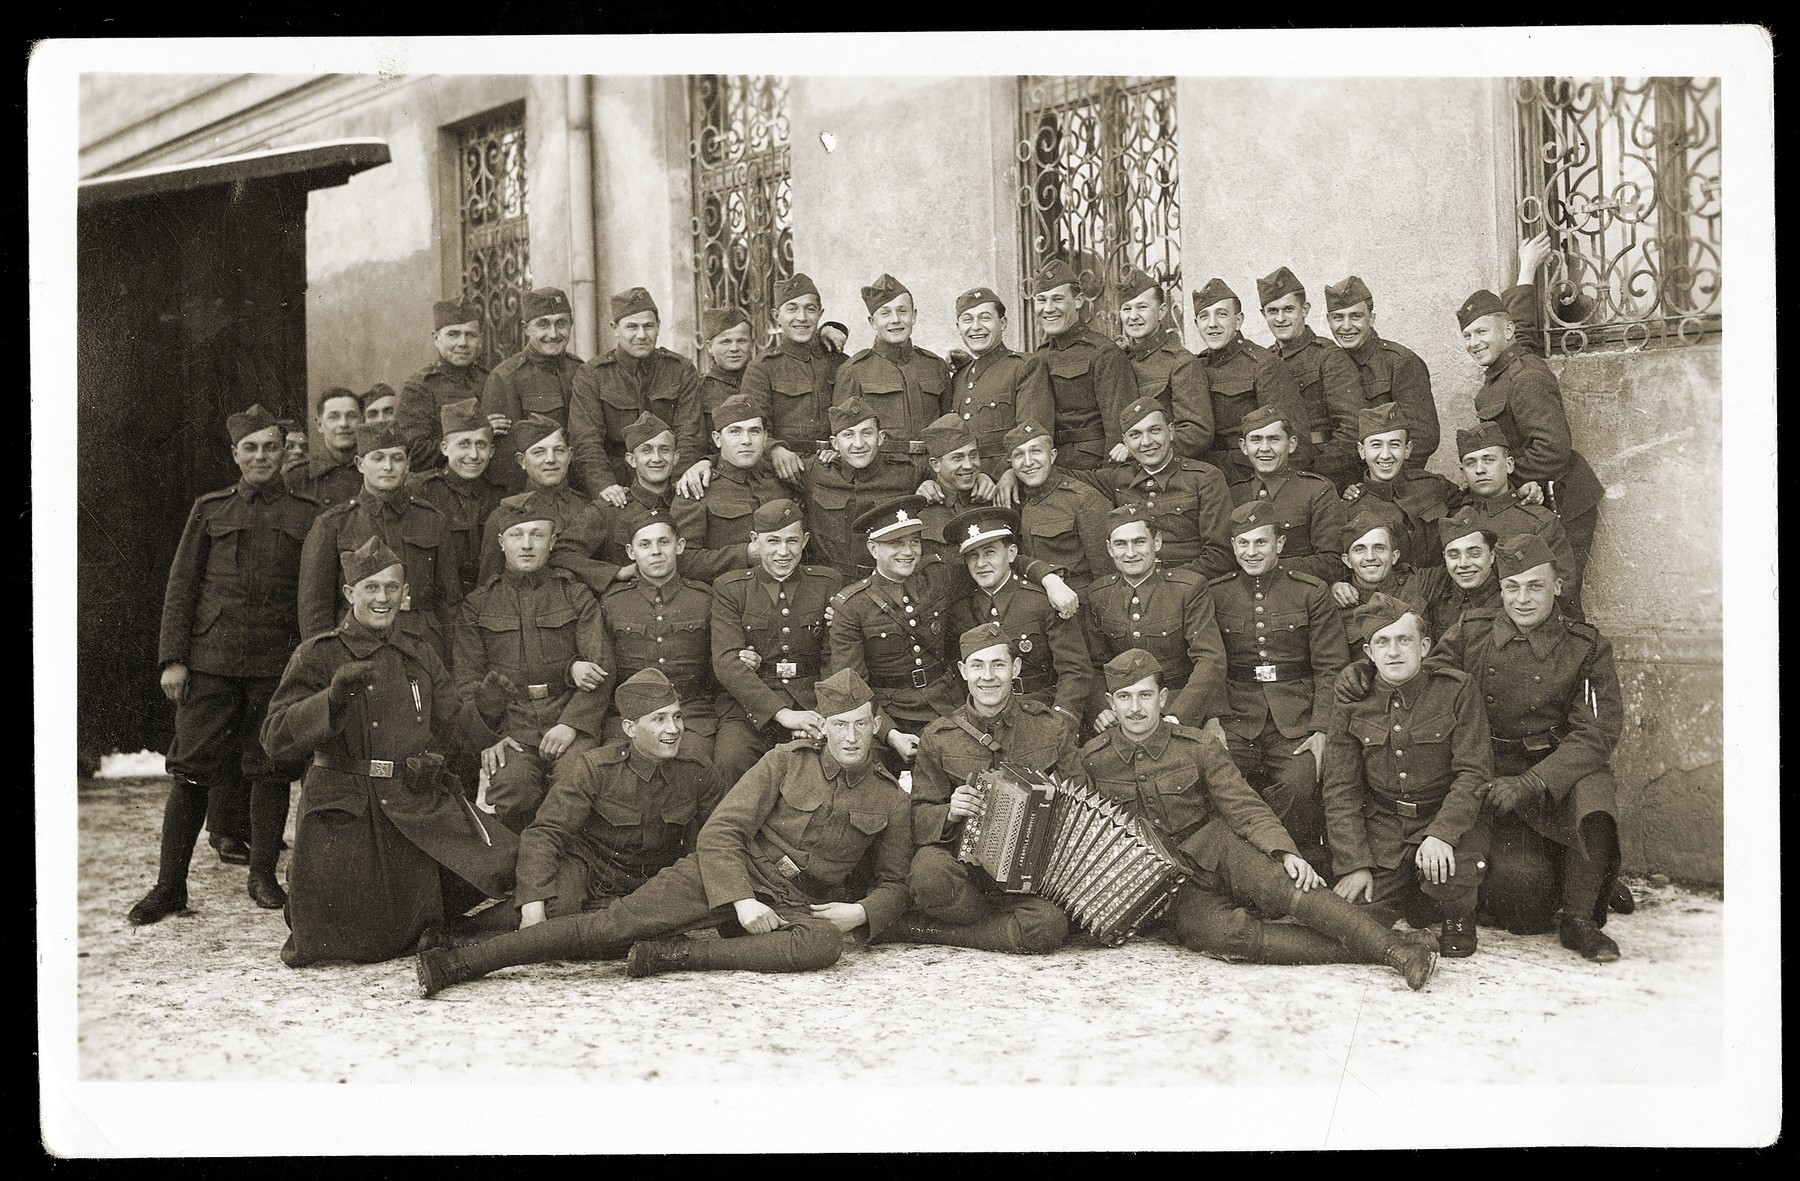 Group portrait of a Slovak army unit that included Jews.